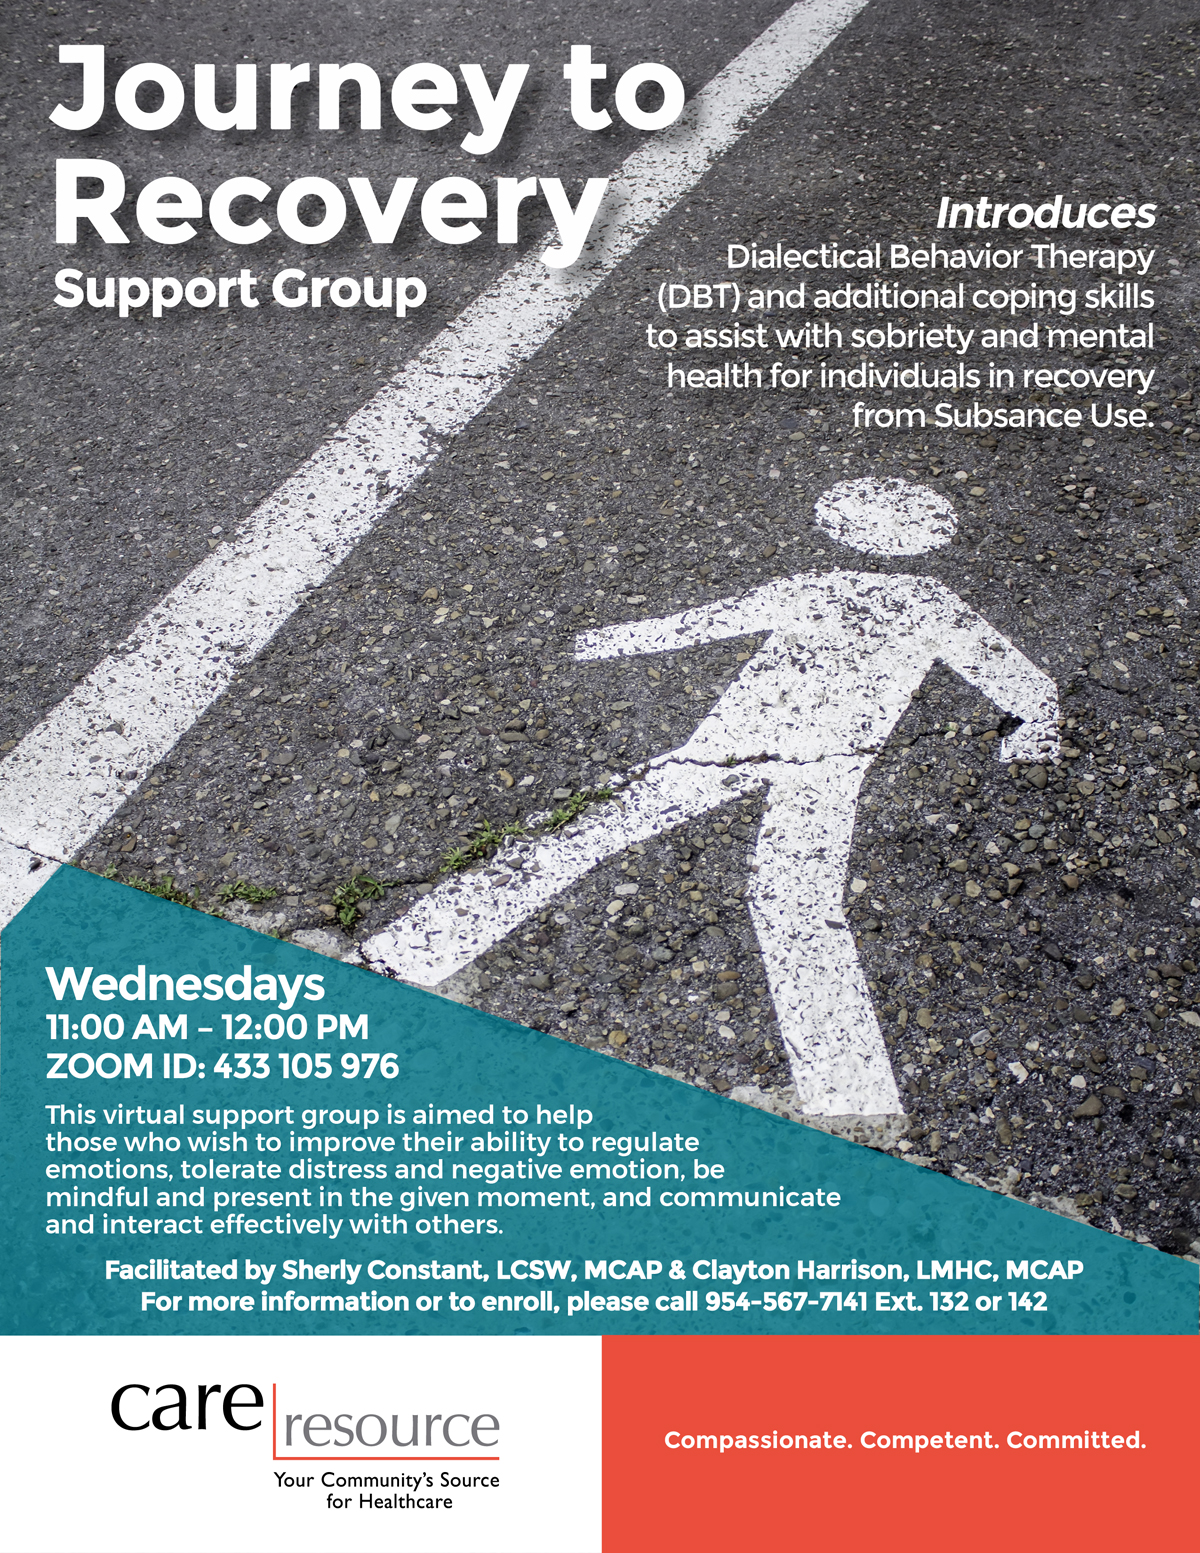 Journey to Recovery Support Group